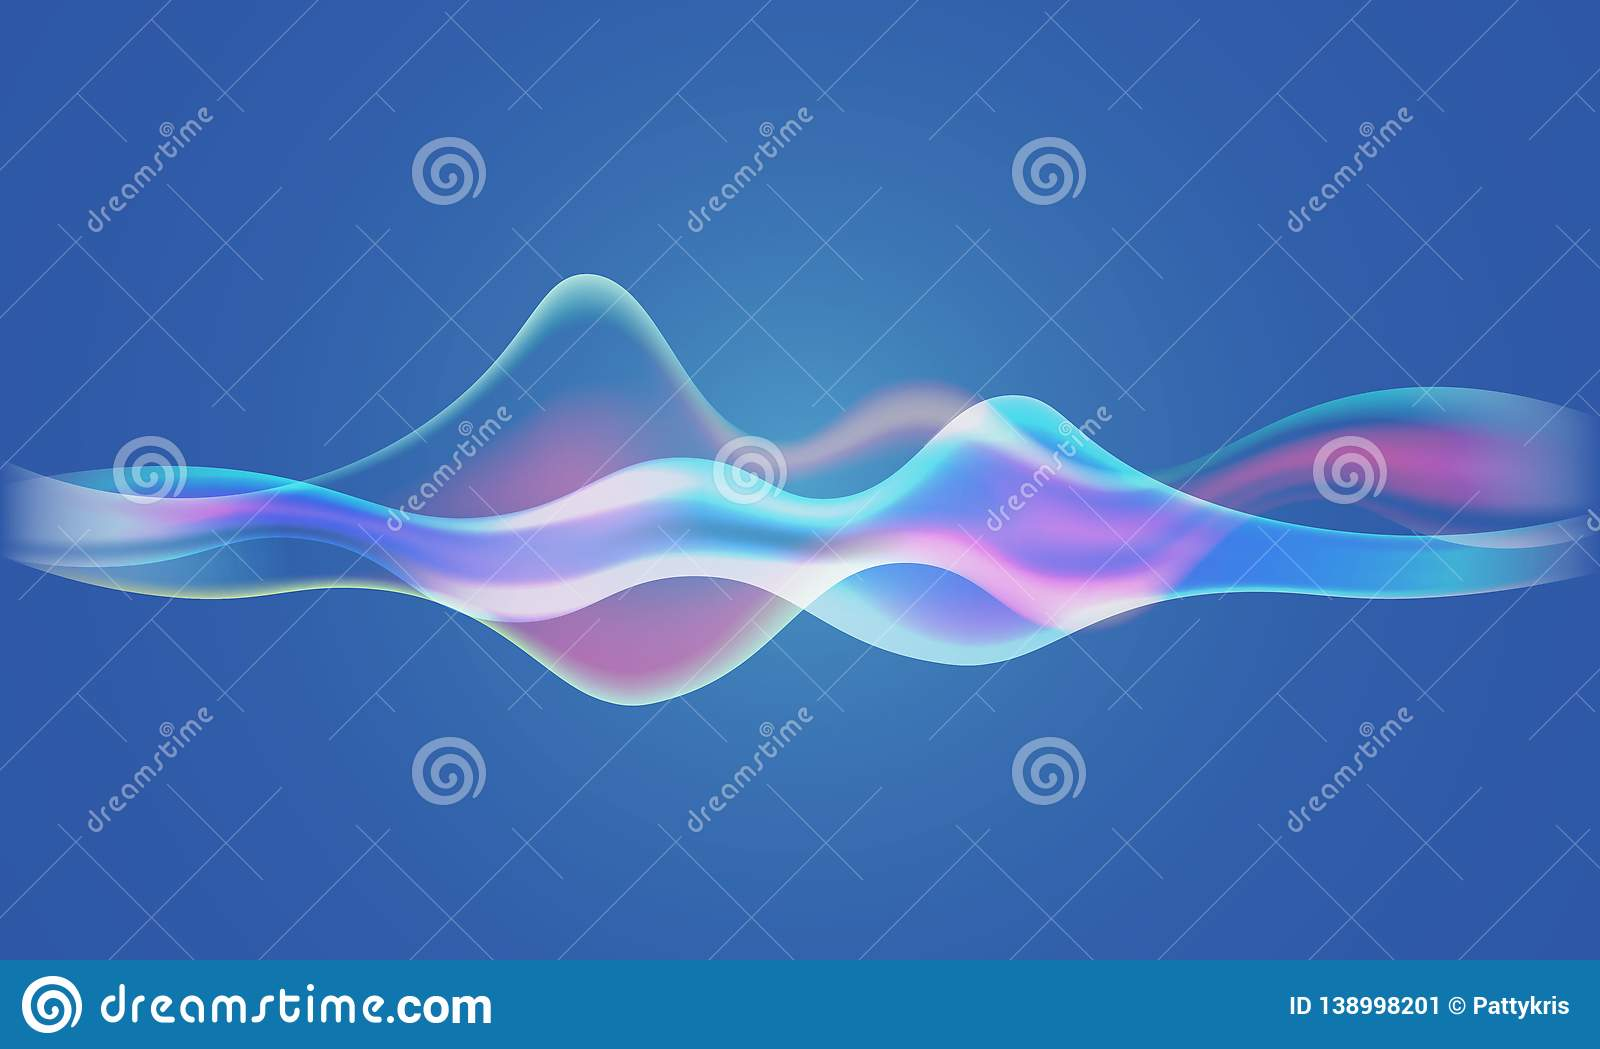 Speaking Sound Wave Illustration Vector Stock Vector